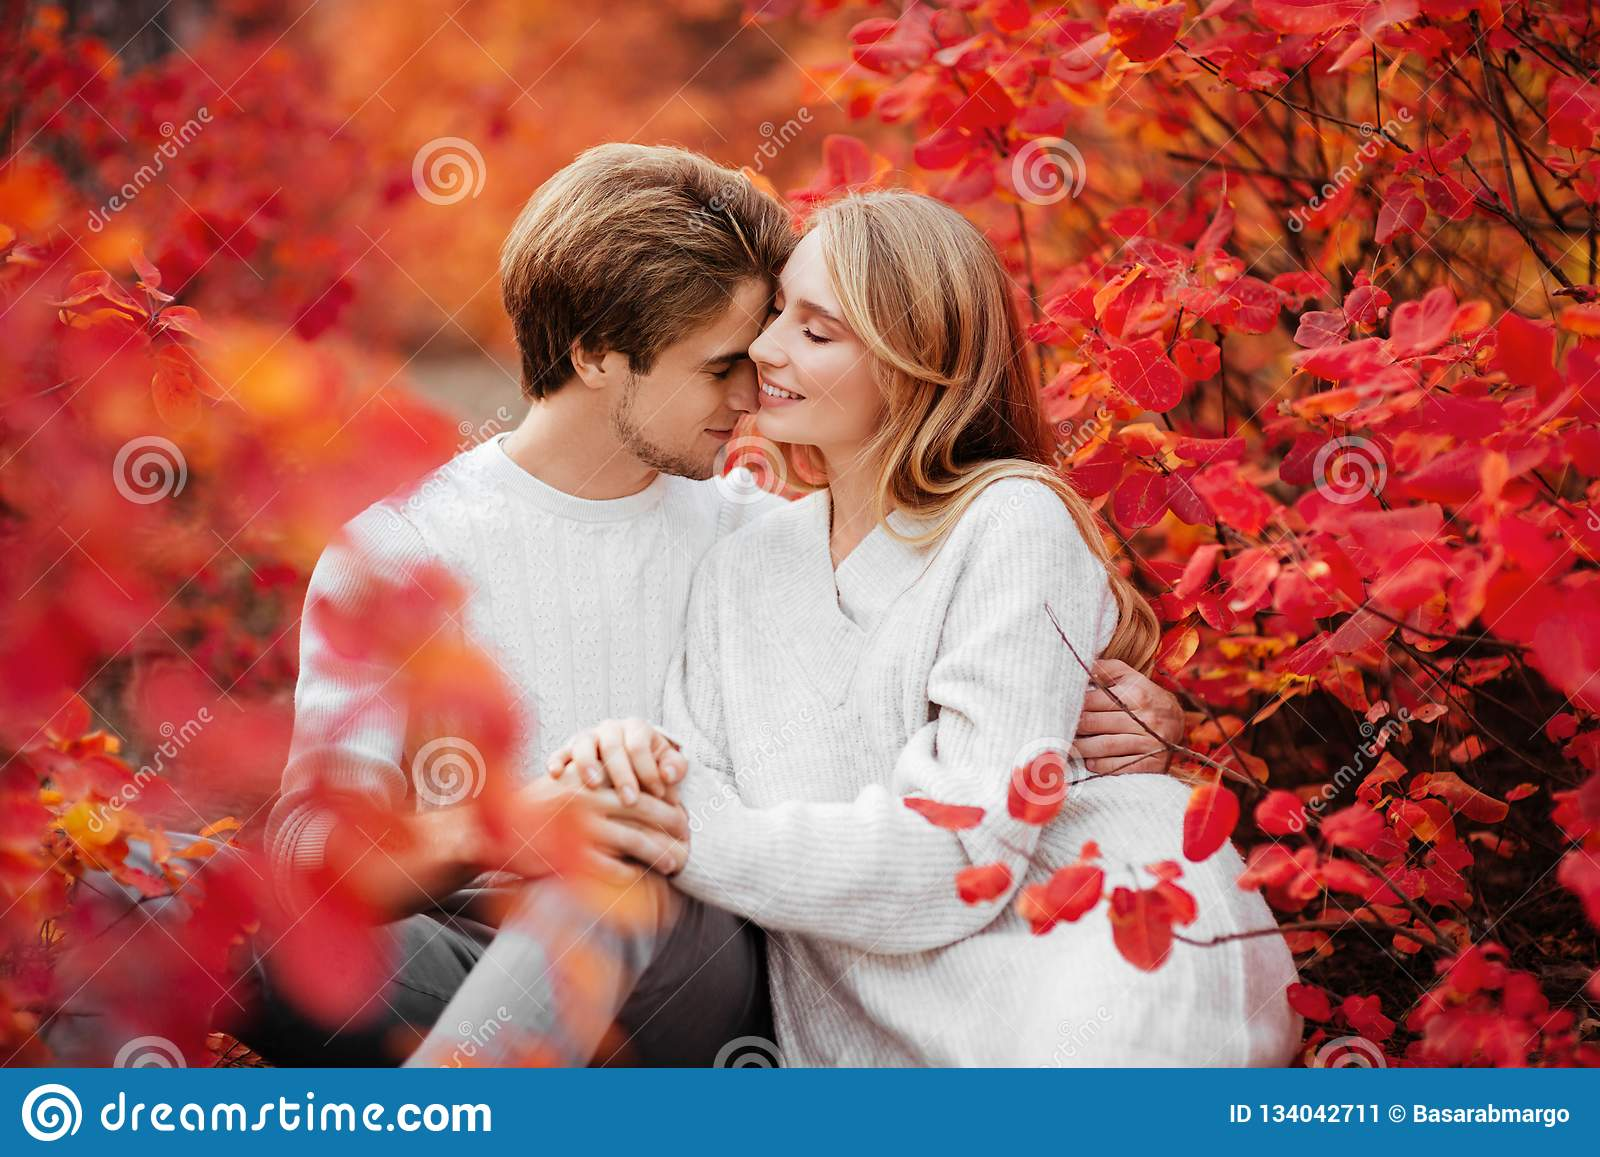 Couple is hugging and sitting close